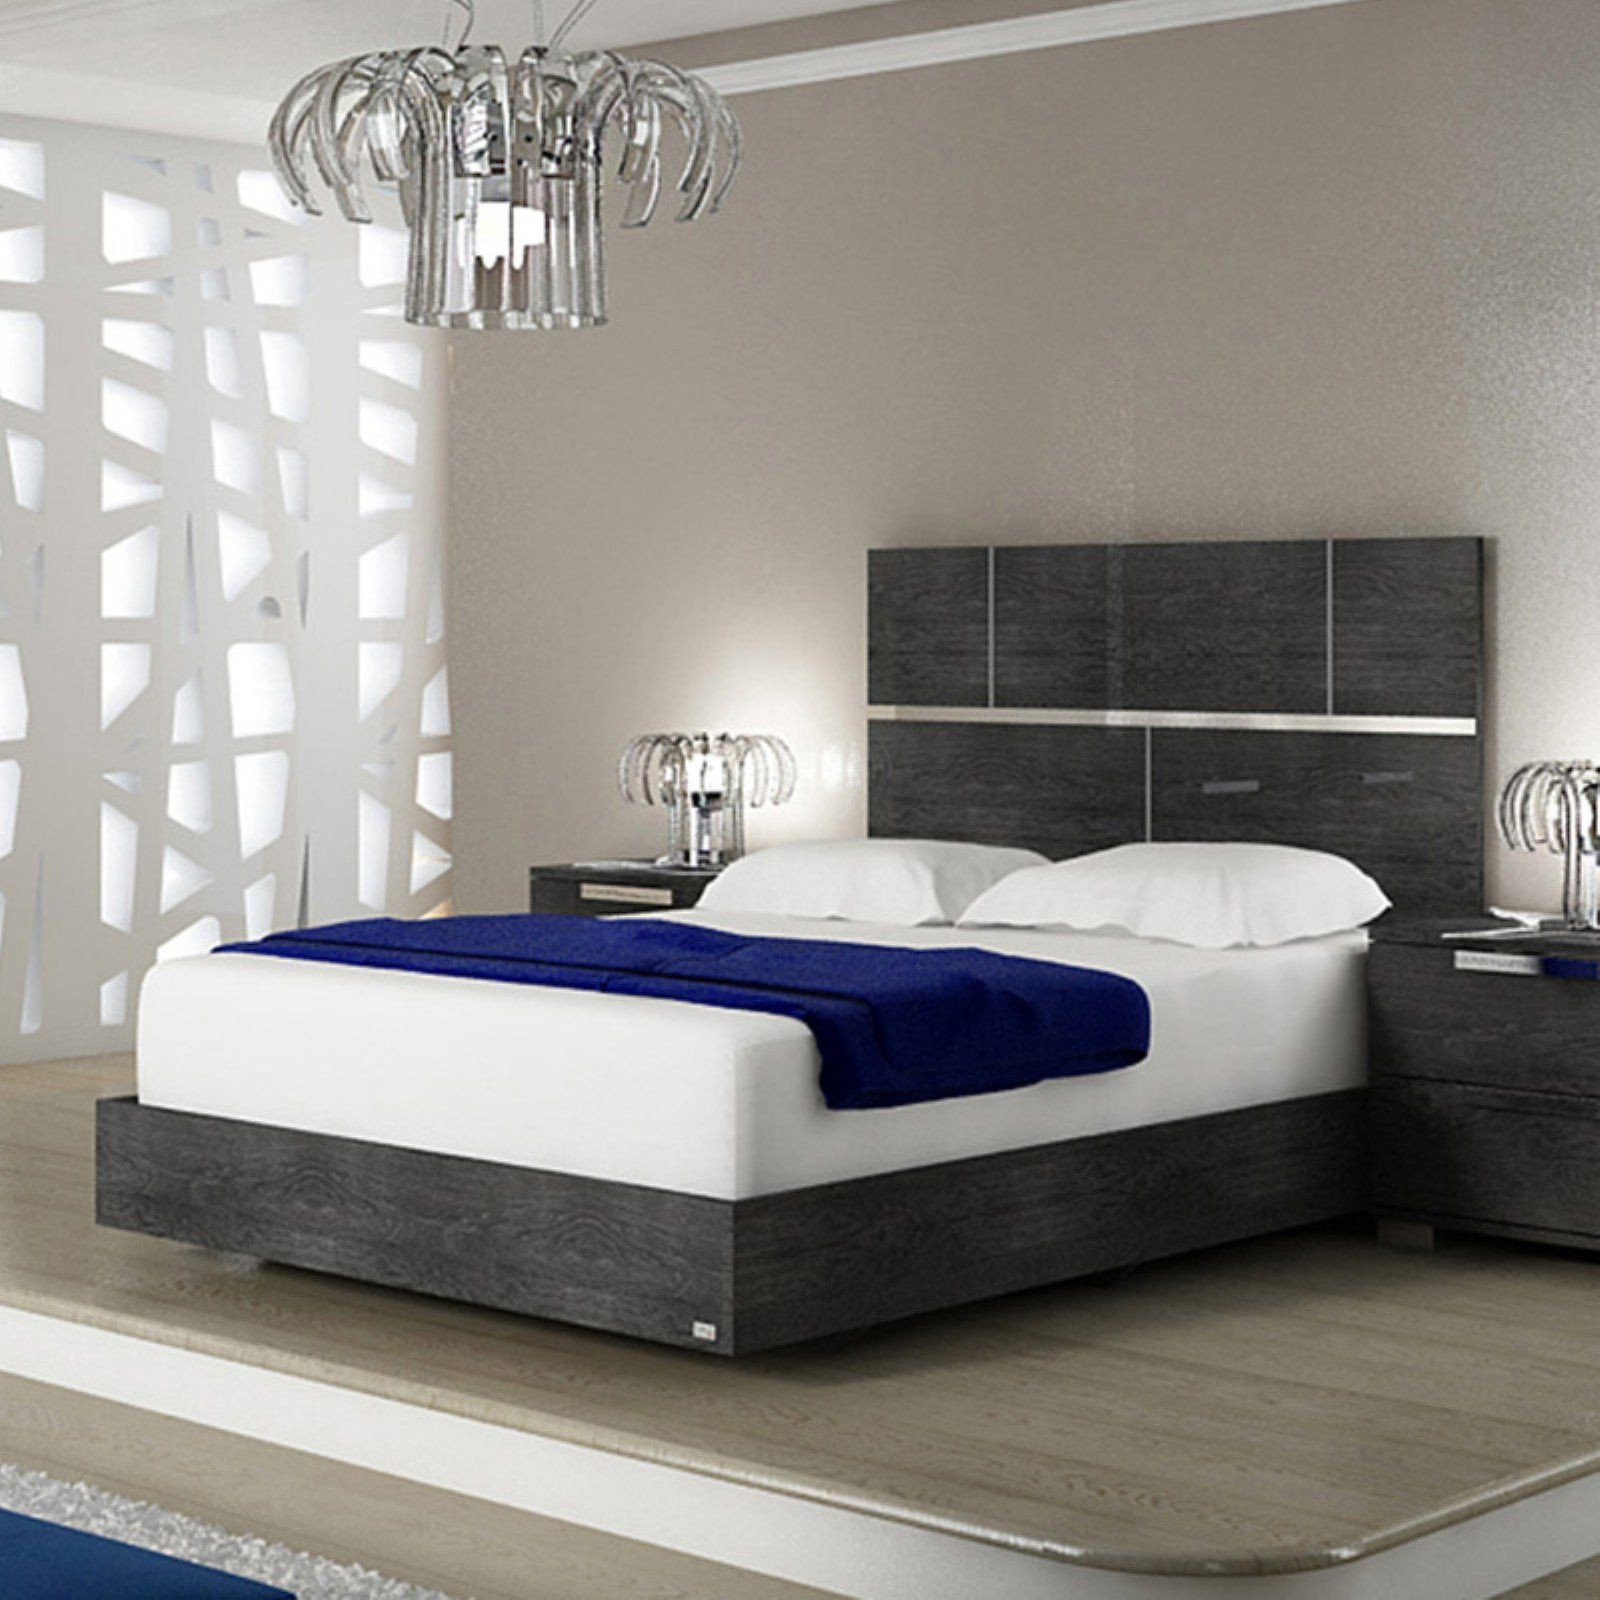 White Lacquer Bedroom Furniture Fresh Casabianca Milo Low Profile Lacquer Bed Size King